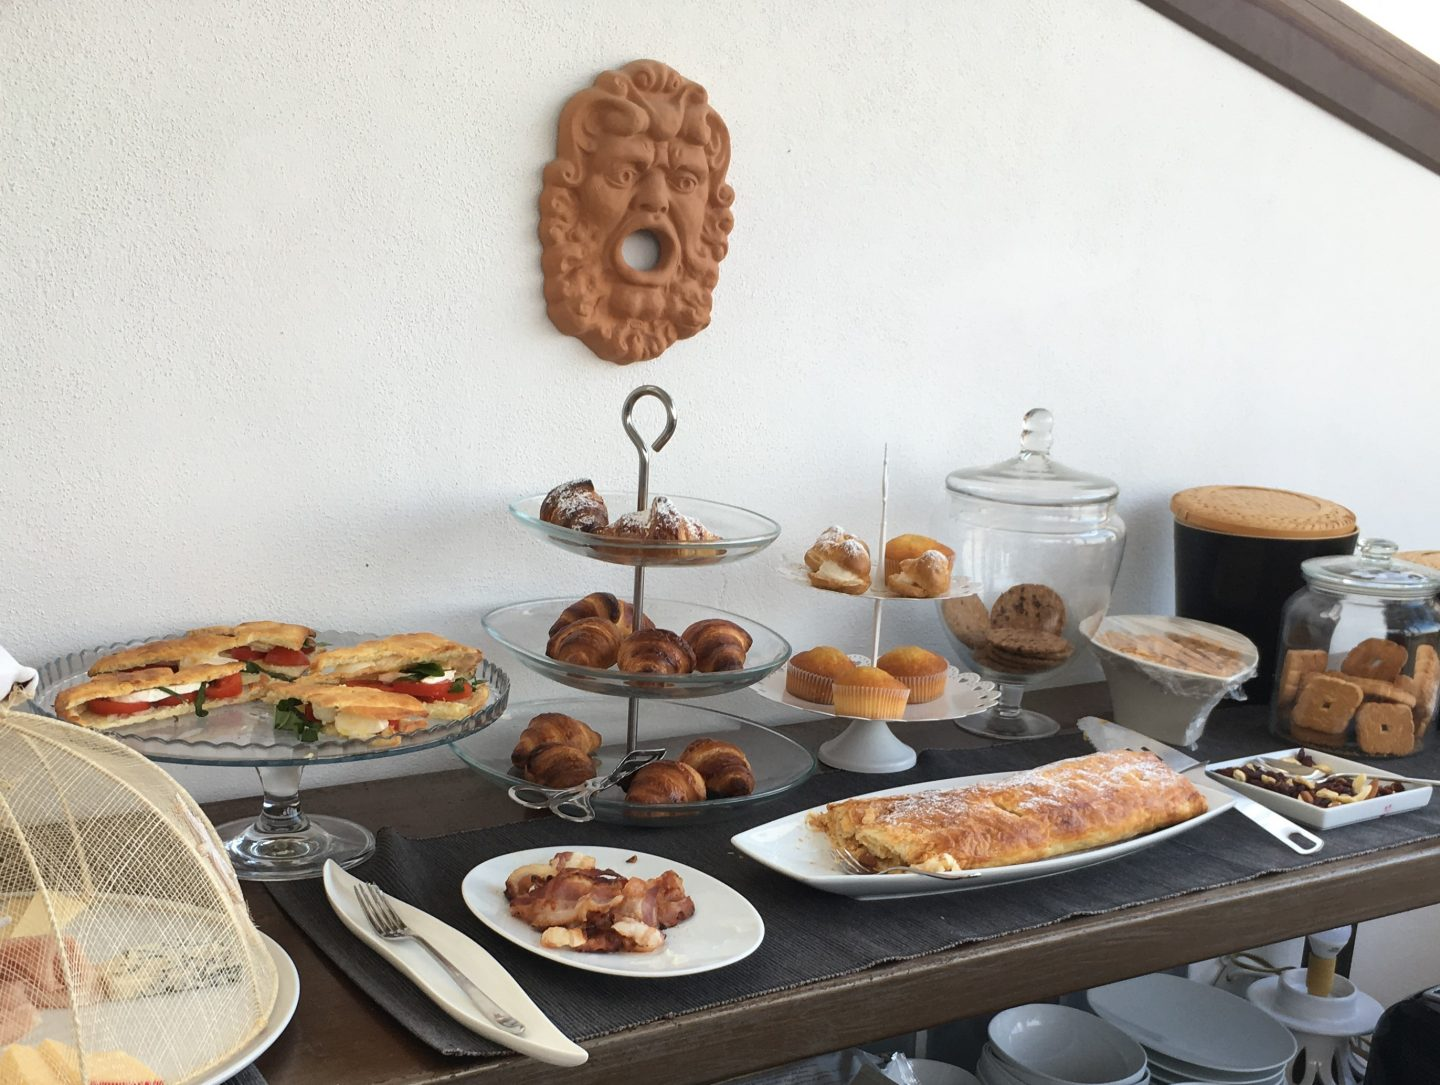 Breakfast at L'Approdo delle Sirene Syracuse